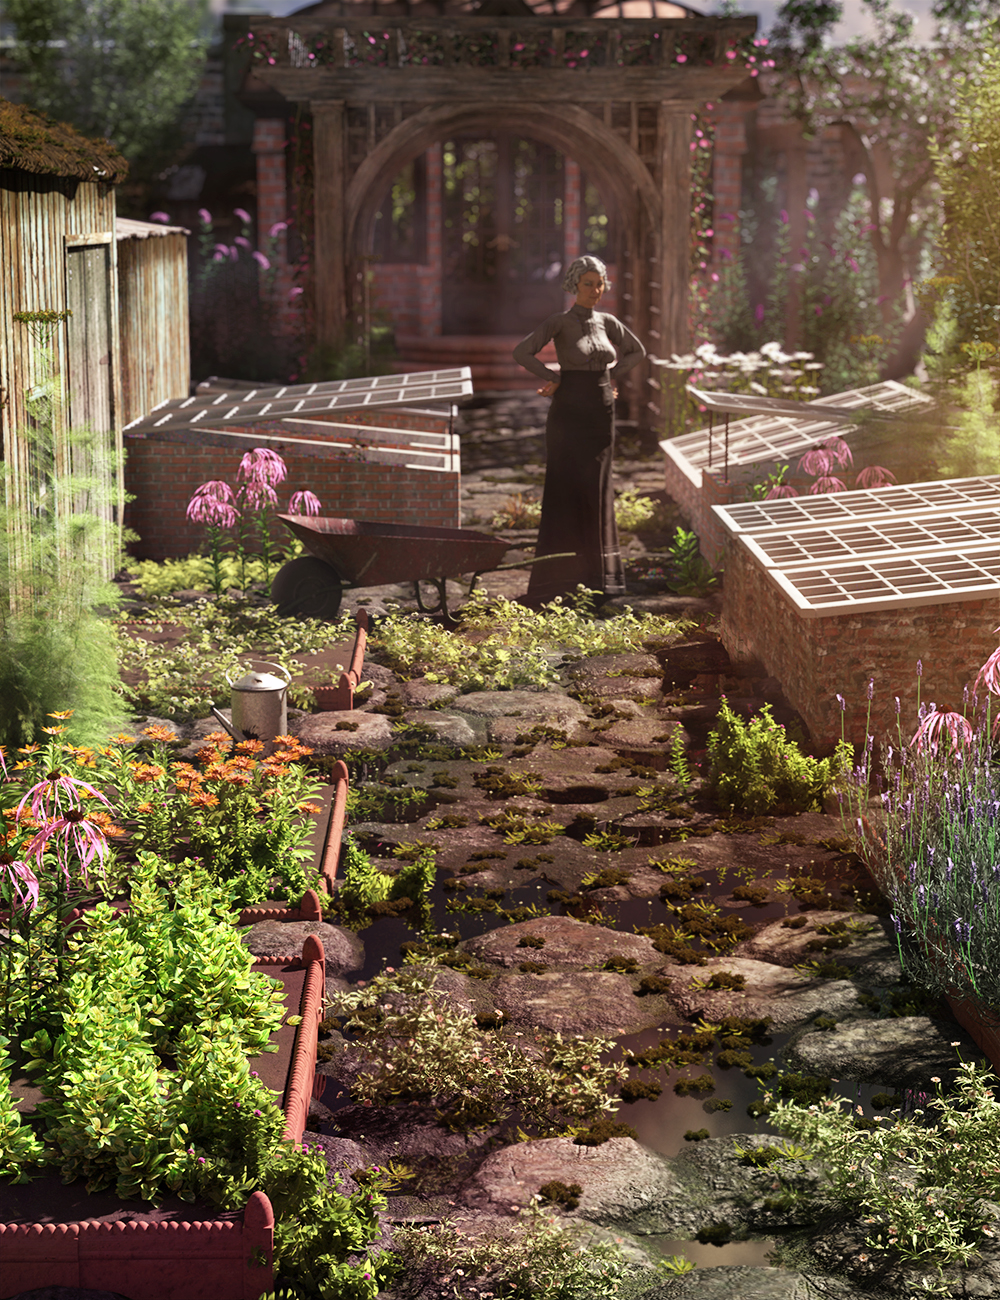 Victorian Garden Cold Frames and Edging Tiles by: MartinJFrost, 3D Models by Daz 3D